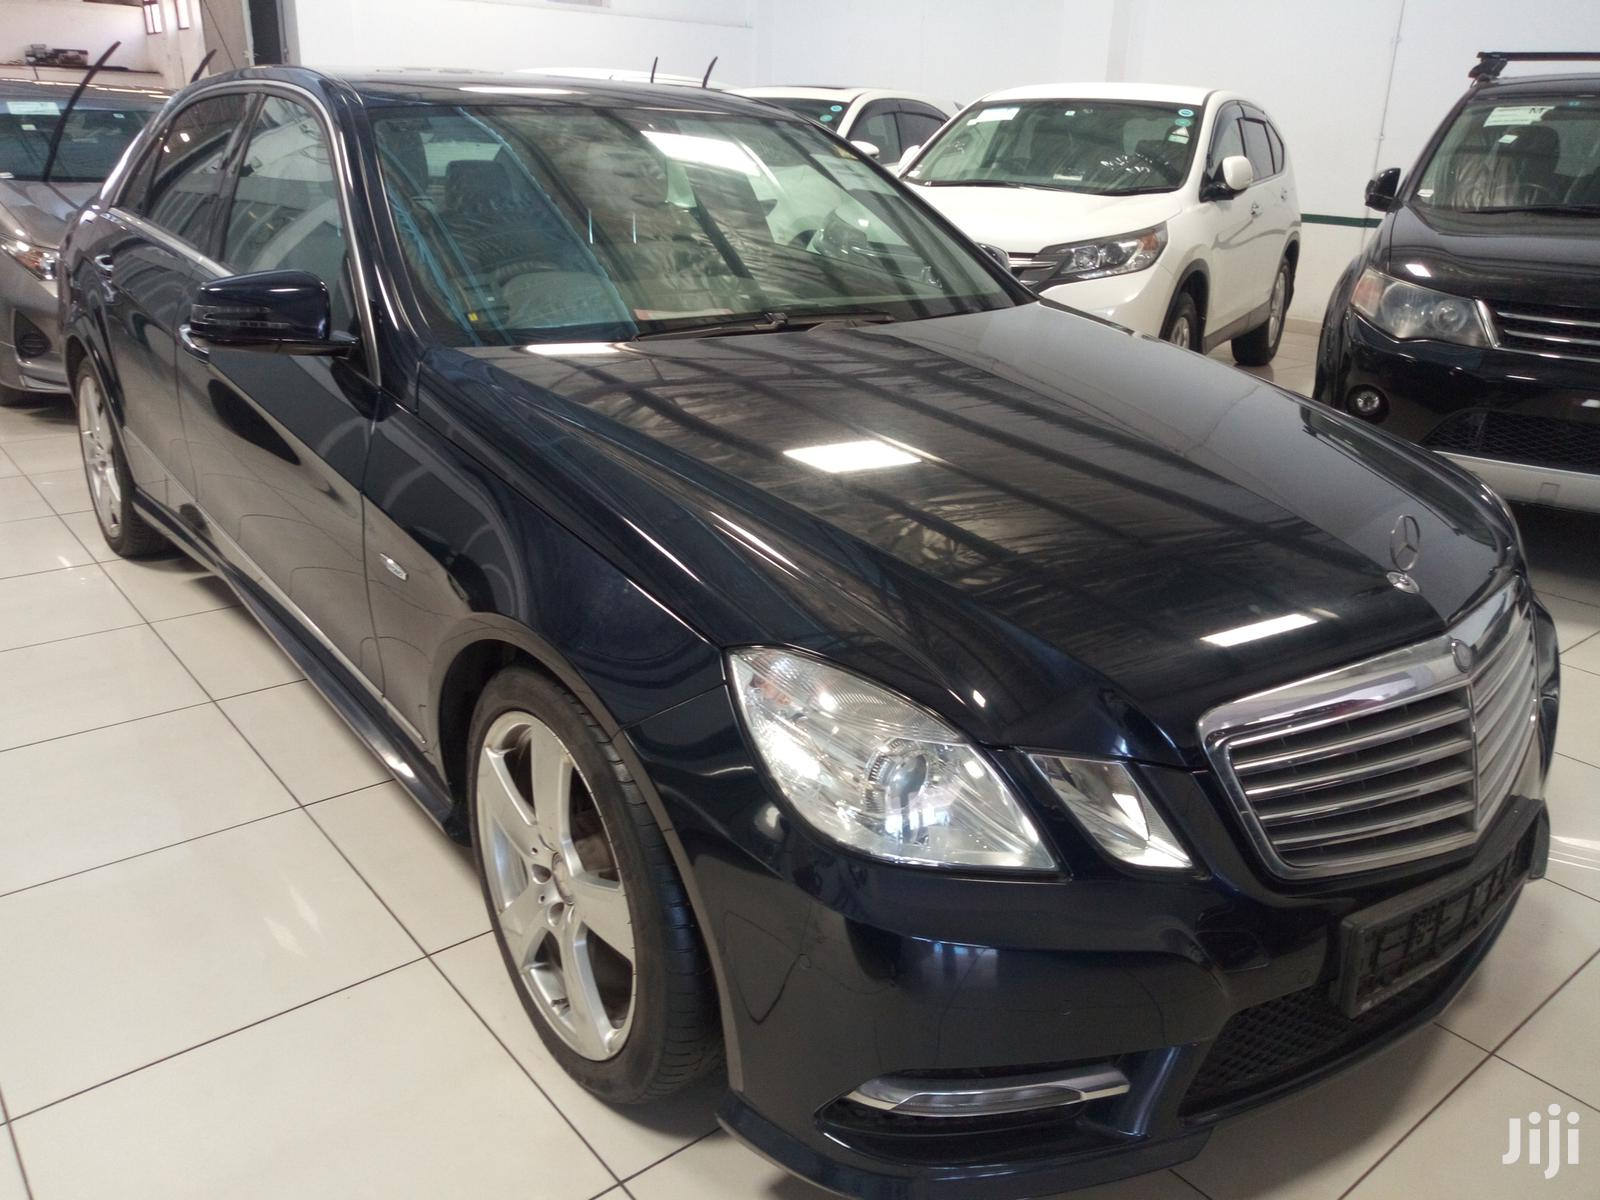 Mercedes Benz E250 2012 Black | Cars for sale in Moi Avenue, Mombasa, Kenya